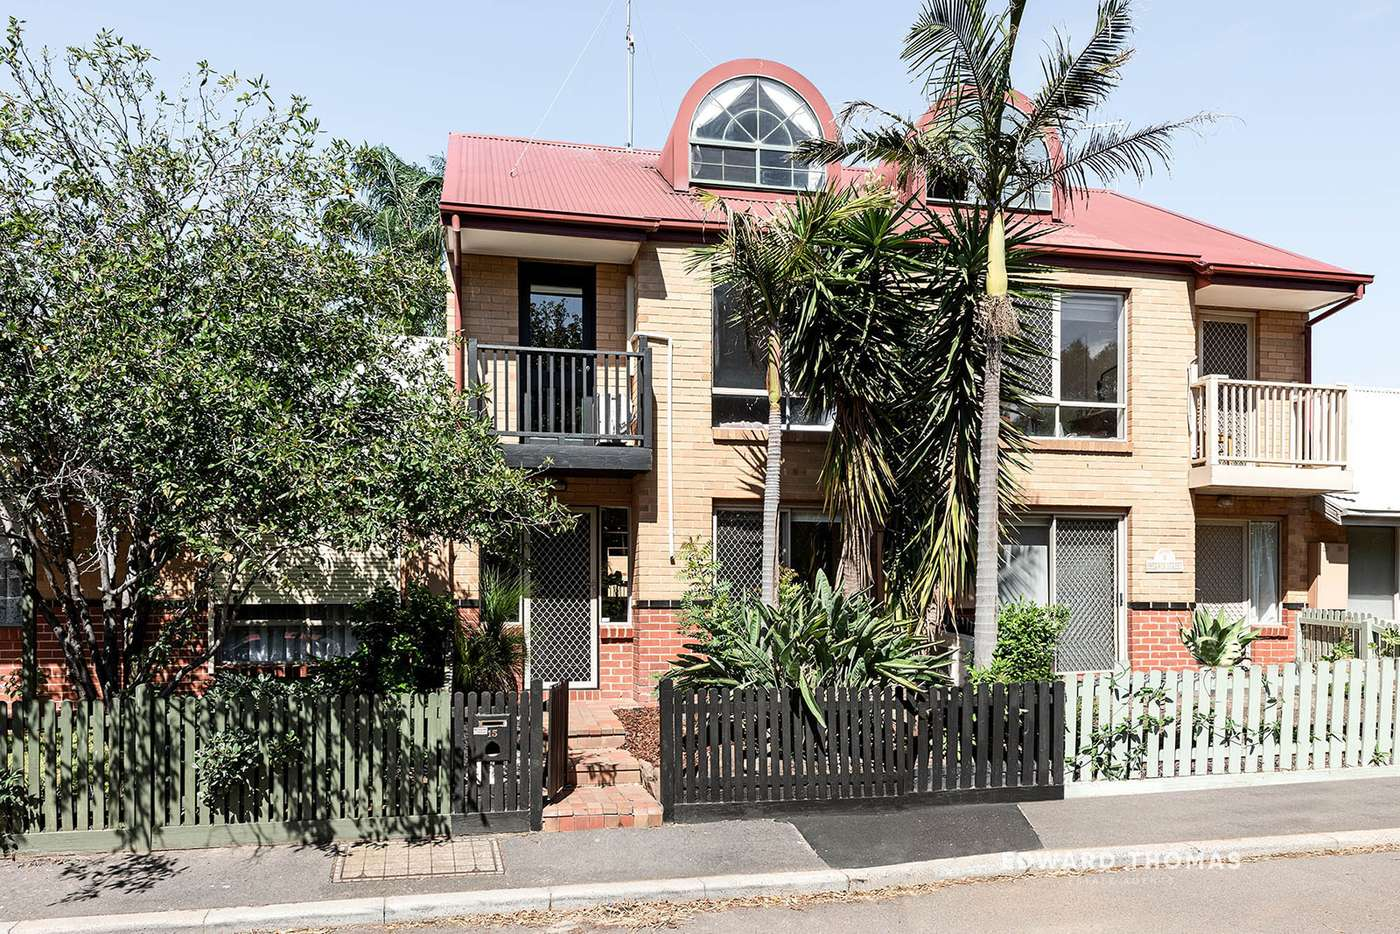 Main view of Homely townhouse listing, 15 Sherwin Street, Kensington VIC 3031